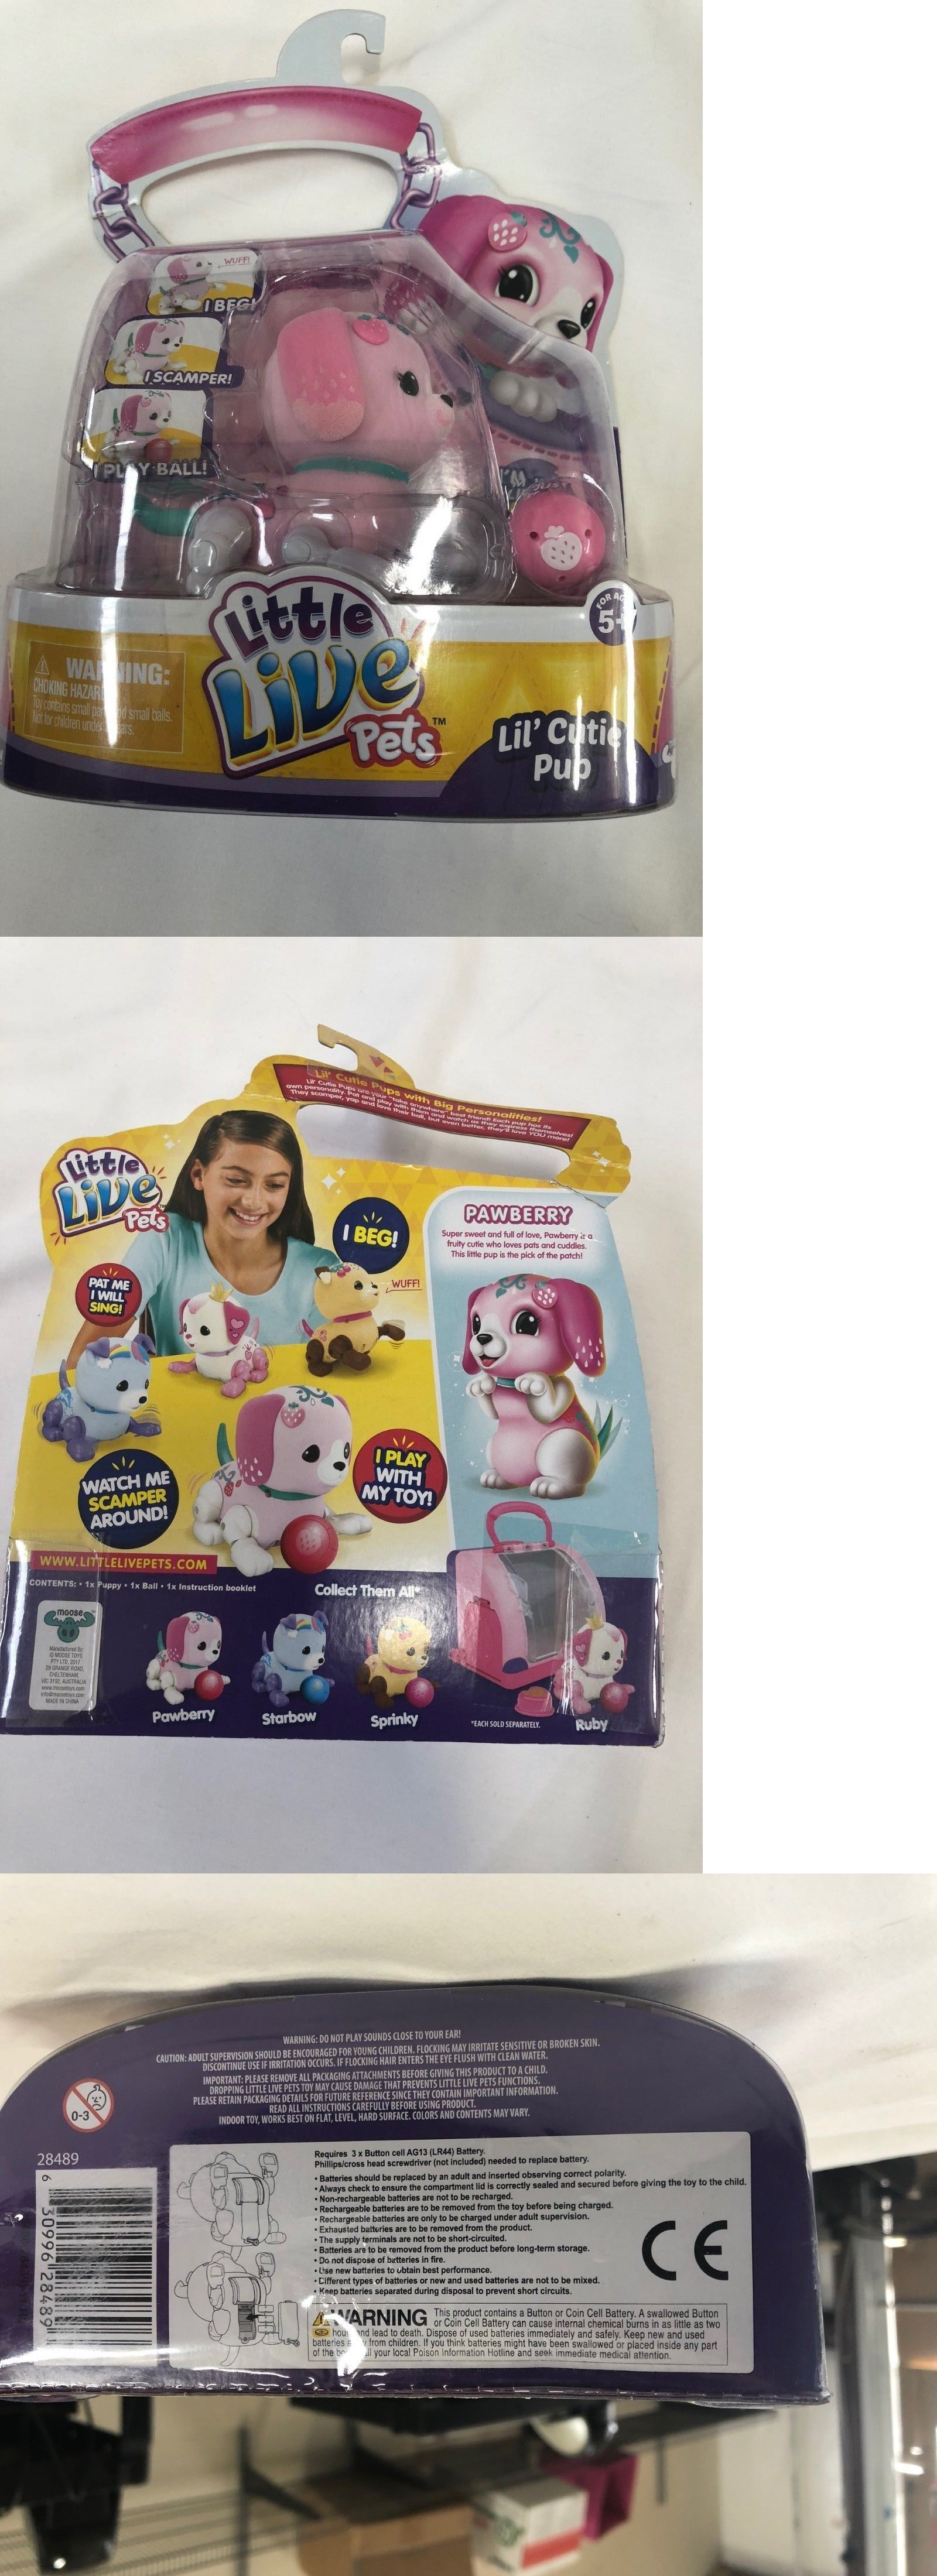 Little Live Pets S1 Cutie Pup Single Pack Pawberry Mixed Lots Pop Ice Paket Bundle 49018 Buy It Now Only 1395 On Ebay